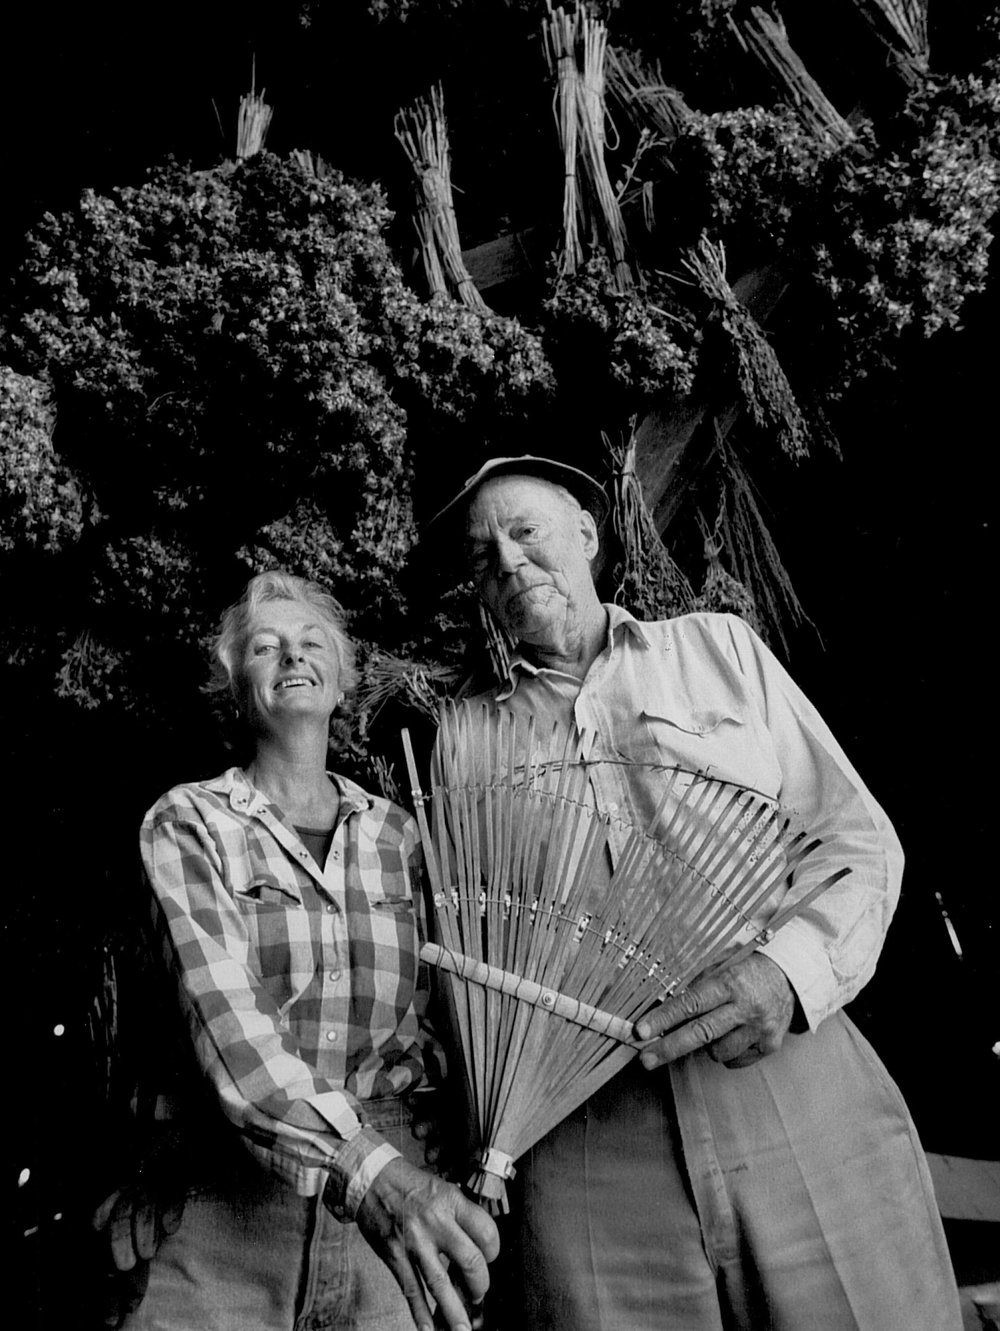 Anne and Otto Teller